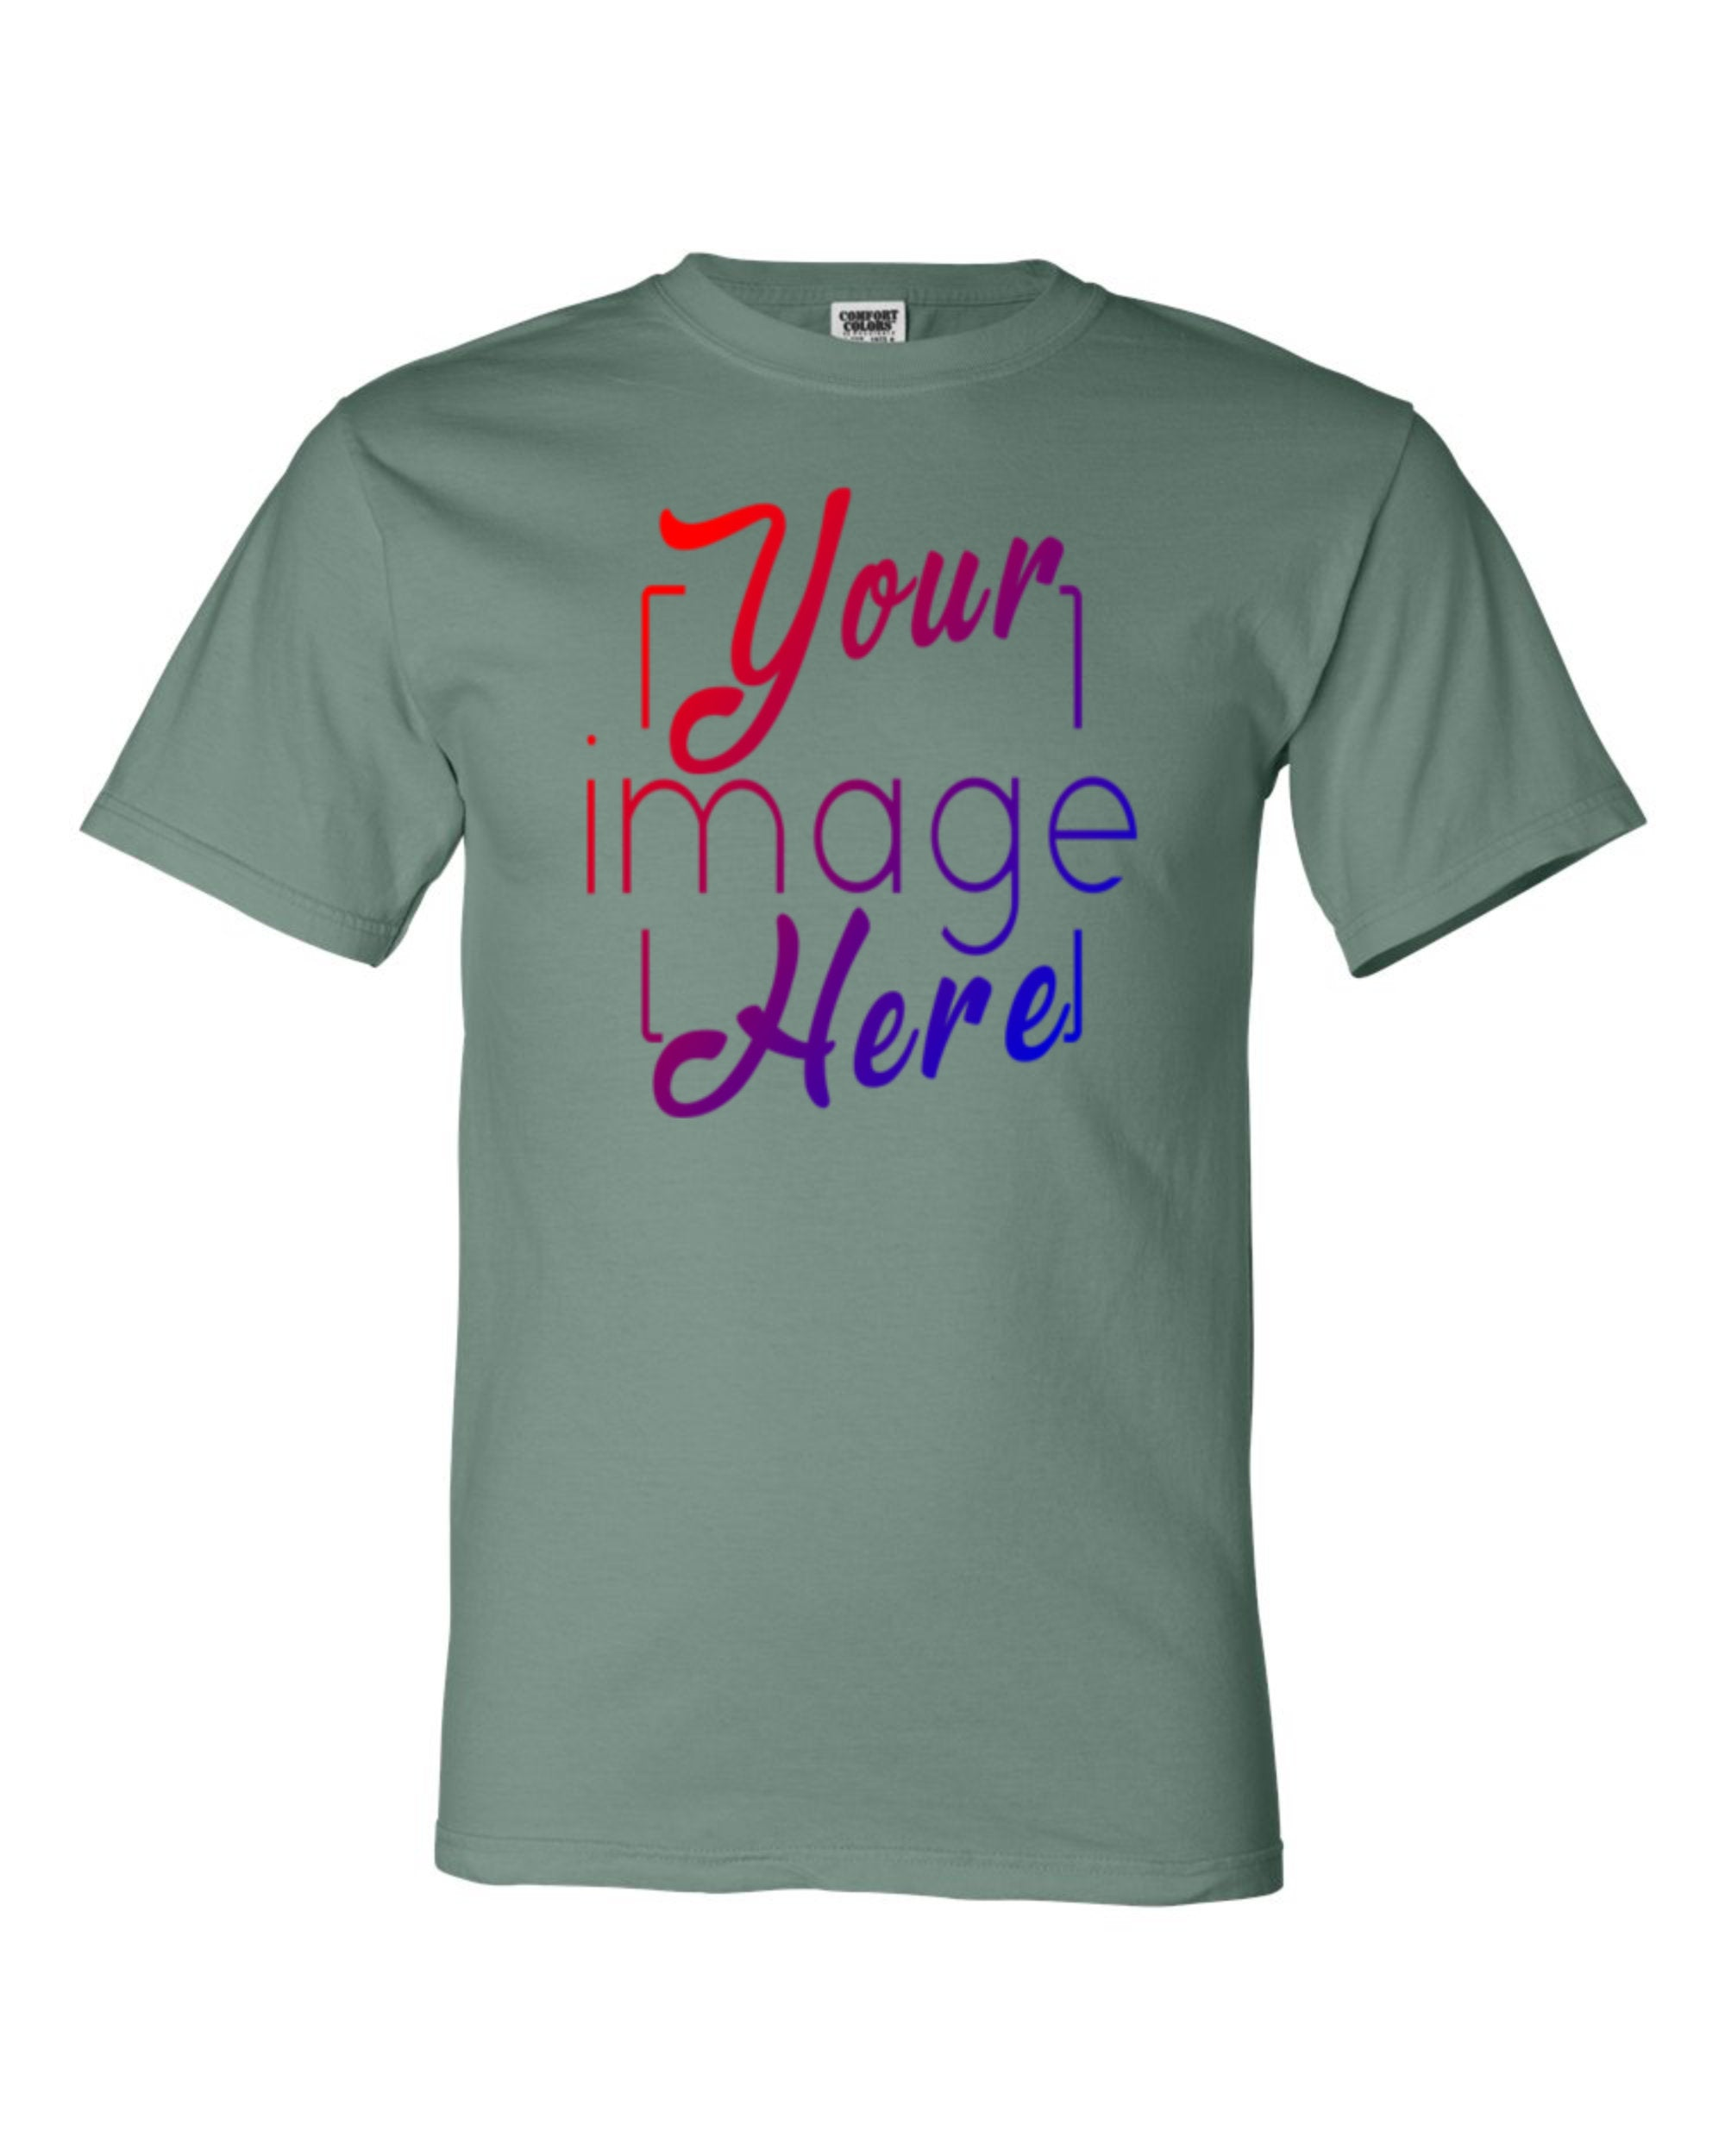 Front Image of Custom Print Area on a Comfort Colors Tshirt